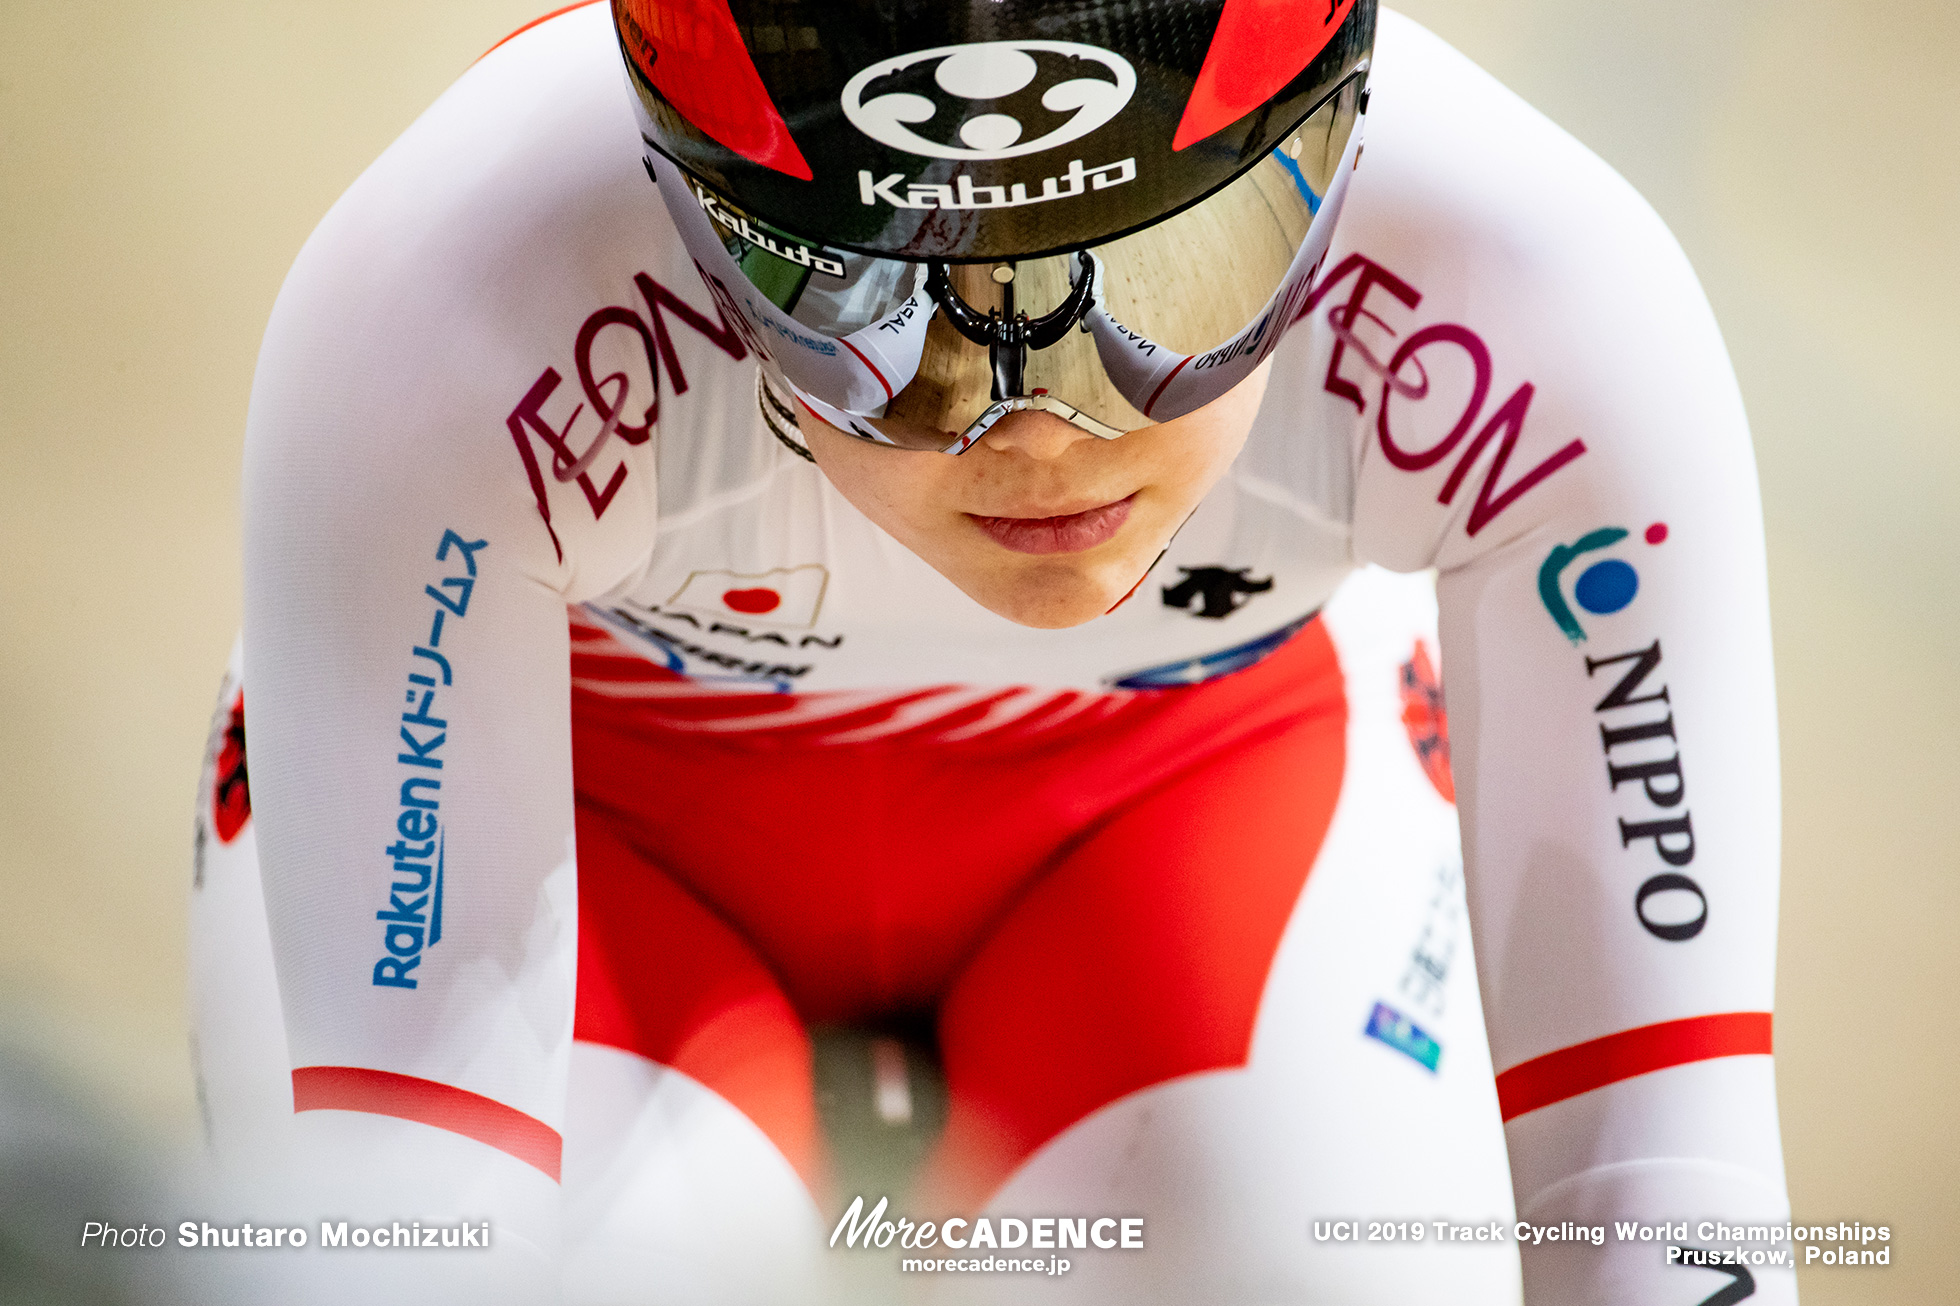 Women's Sprint Qualifying / 2019 Track Cycling World Championships Pruszków, Poland